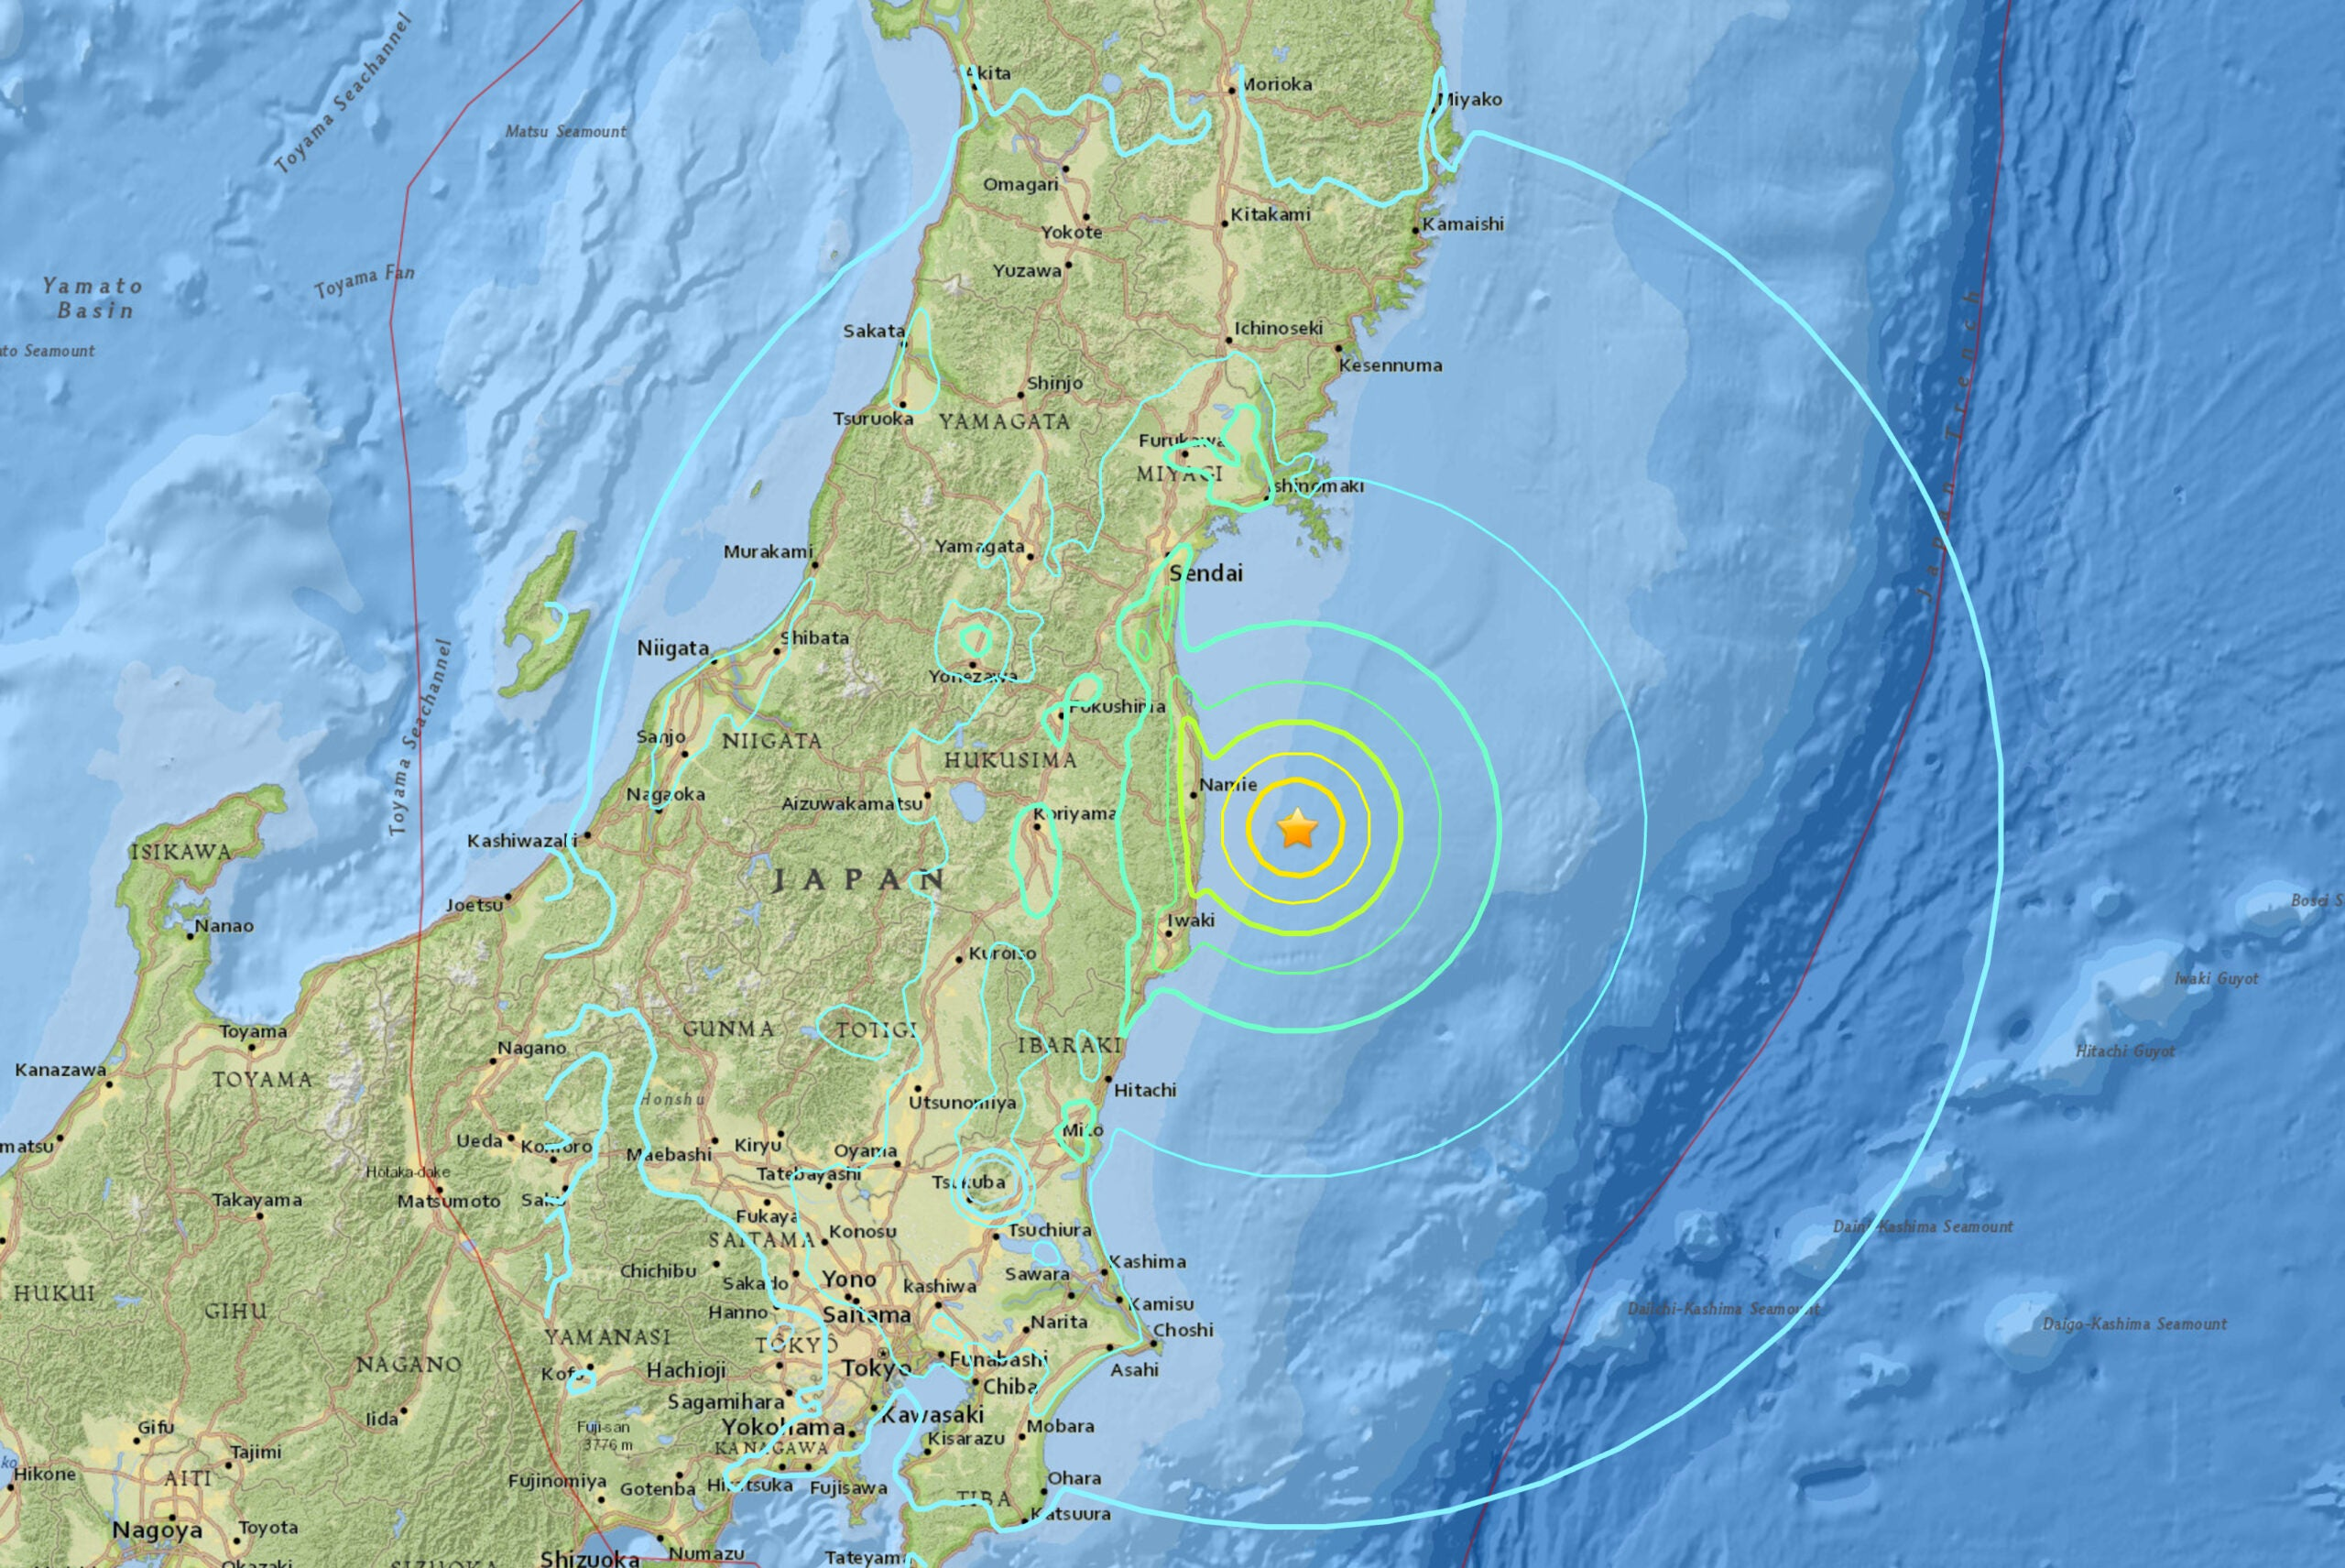 A tsunami near Fukushima rattled Japan, but damage is minimal